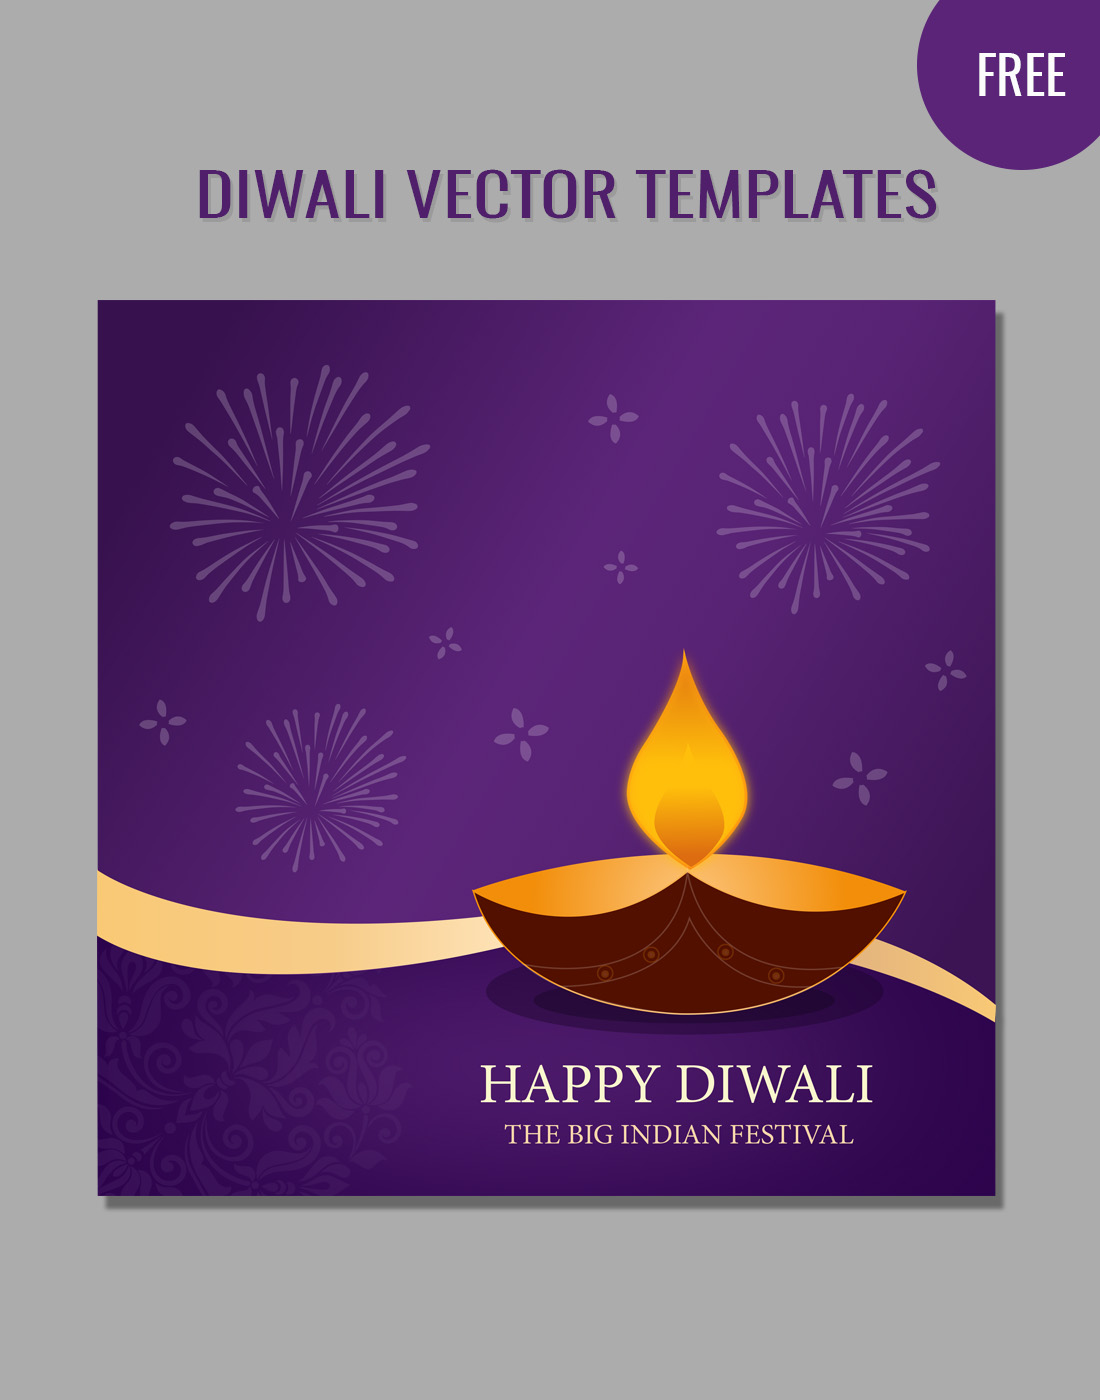 DIWALI-TEMPLATE Template Application Mobile Html on google template, mobile app login screen, terms and conditions template, web site template, mobile application security, mobile application logo, mobile application development, mobile application support, design template, sports template, book template, mobile application menu, mobile application app, mobile application process, mobile application strategy, away from desk template, mobile application navigation, social media marketing template, mobile application design, photography template,